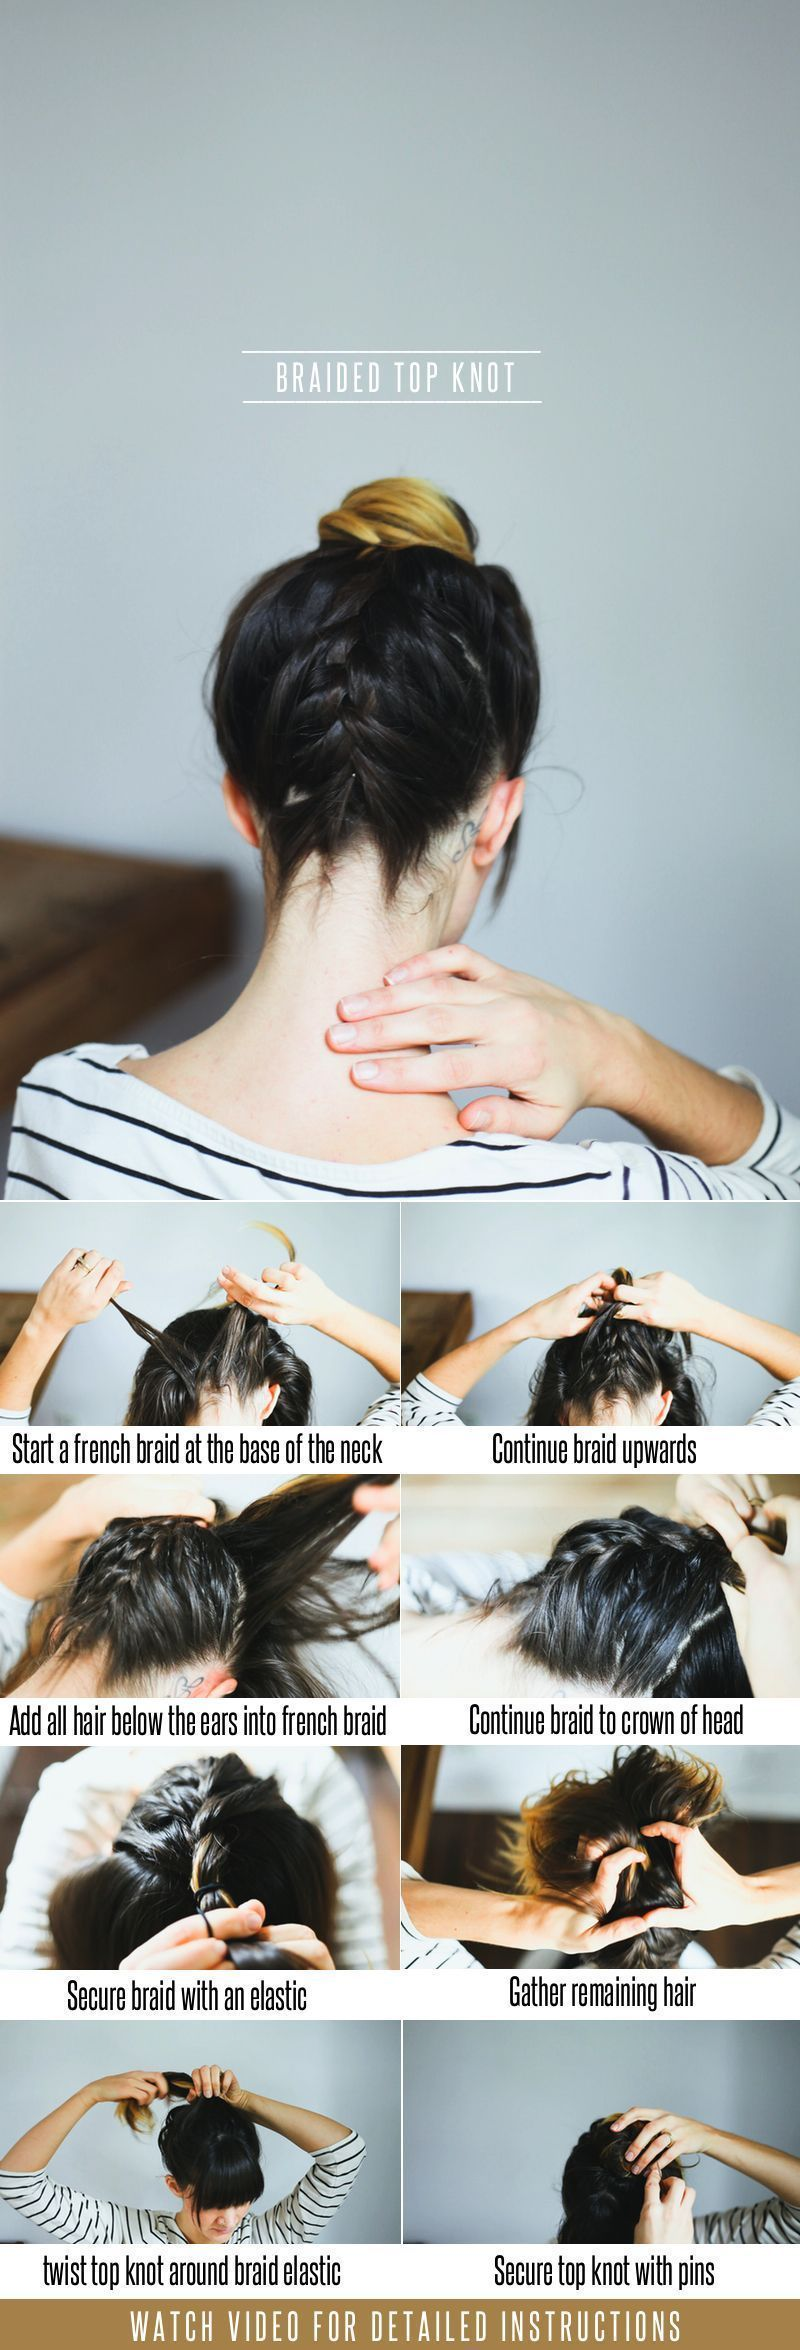 Hair Tutorial // Braided Top Knot #braidedtopknots Hair Tutorial // Braided Top …